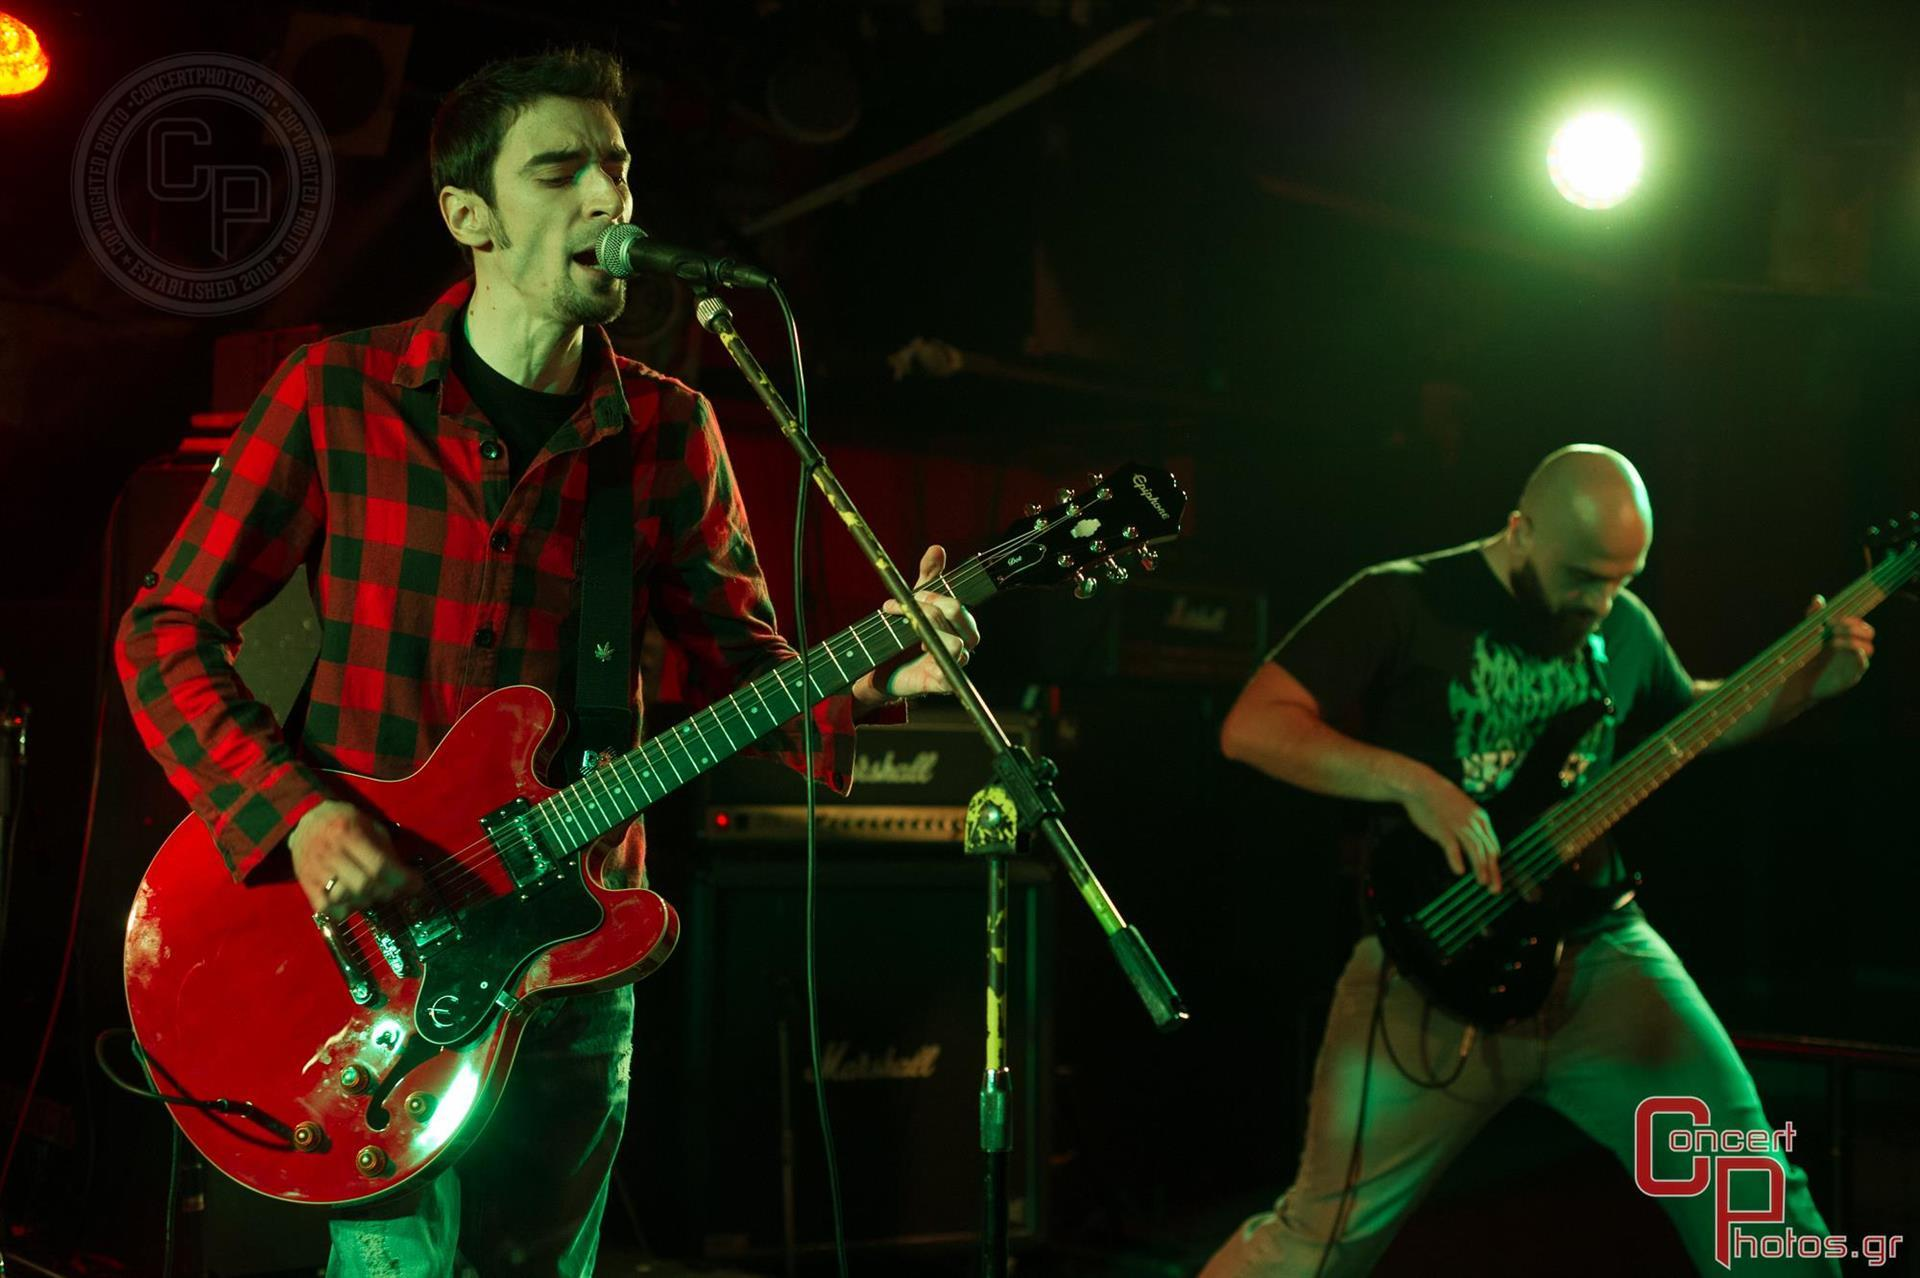 Battle Of The Bands Athens - Leg 3- photographer:  - ConcertPhotos - 20150105_0008_29